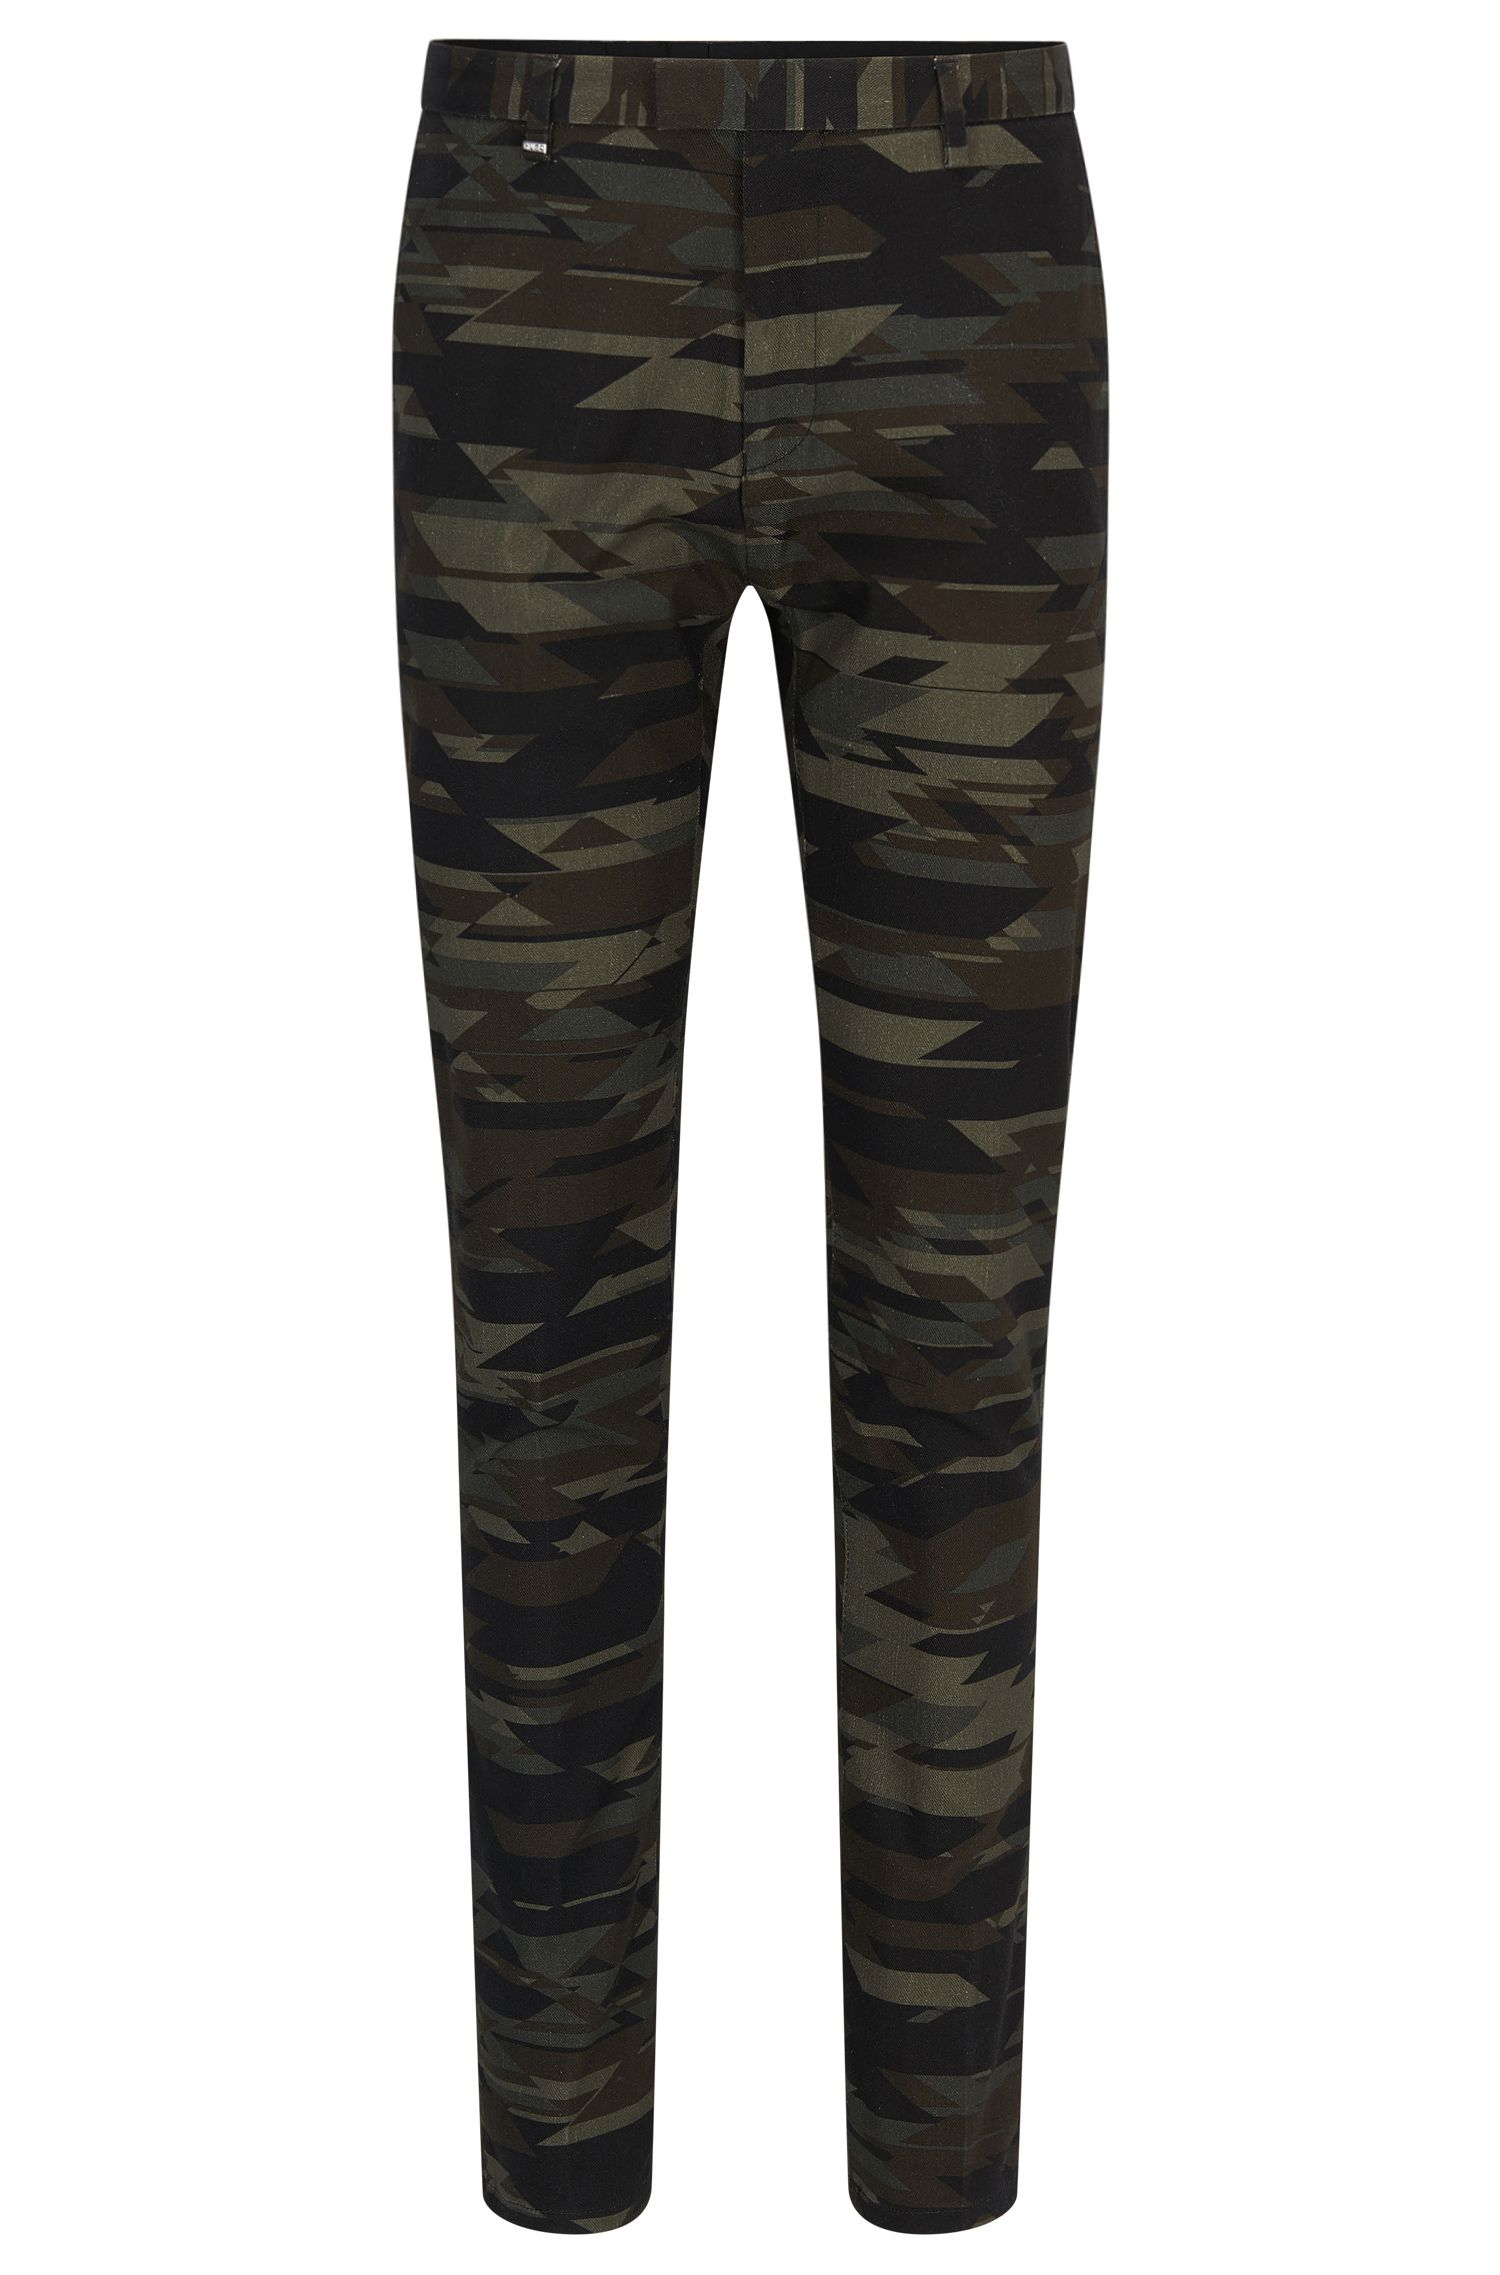 Camo Stretch Cotton Blend Pants, Regular Fit | Helgo